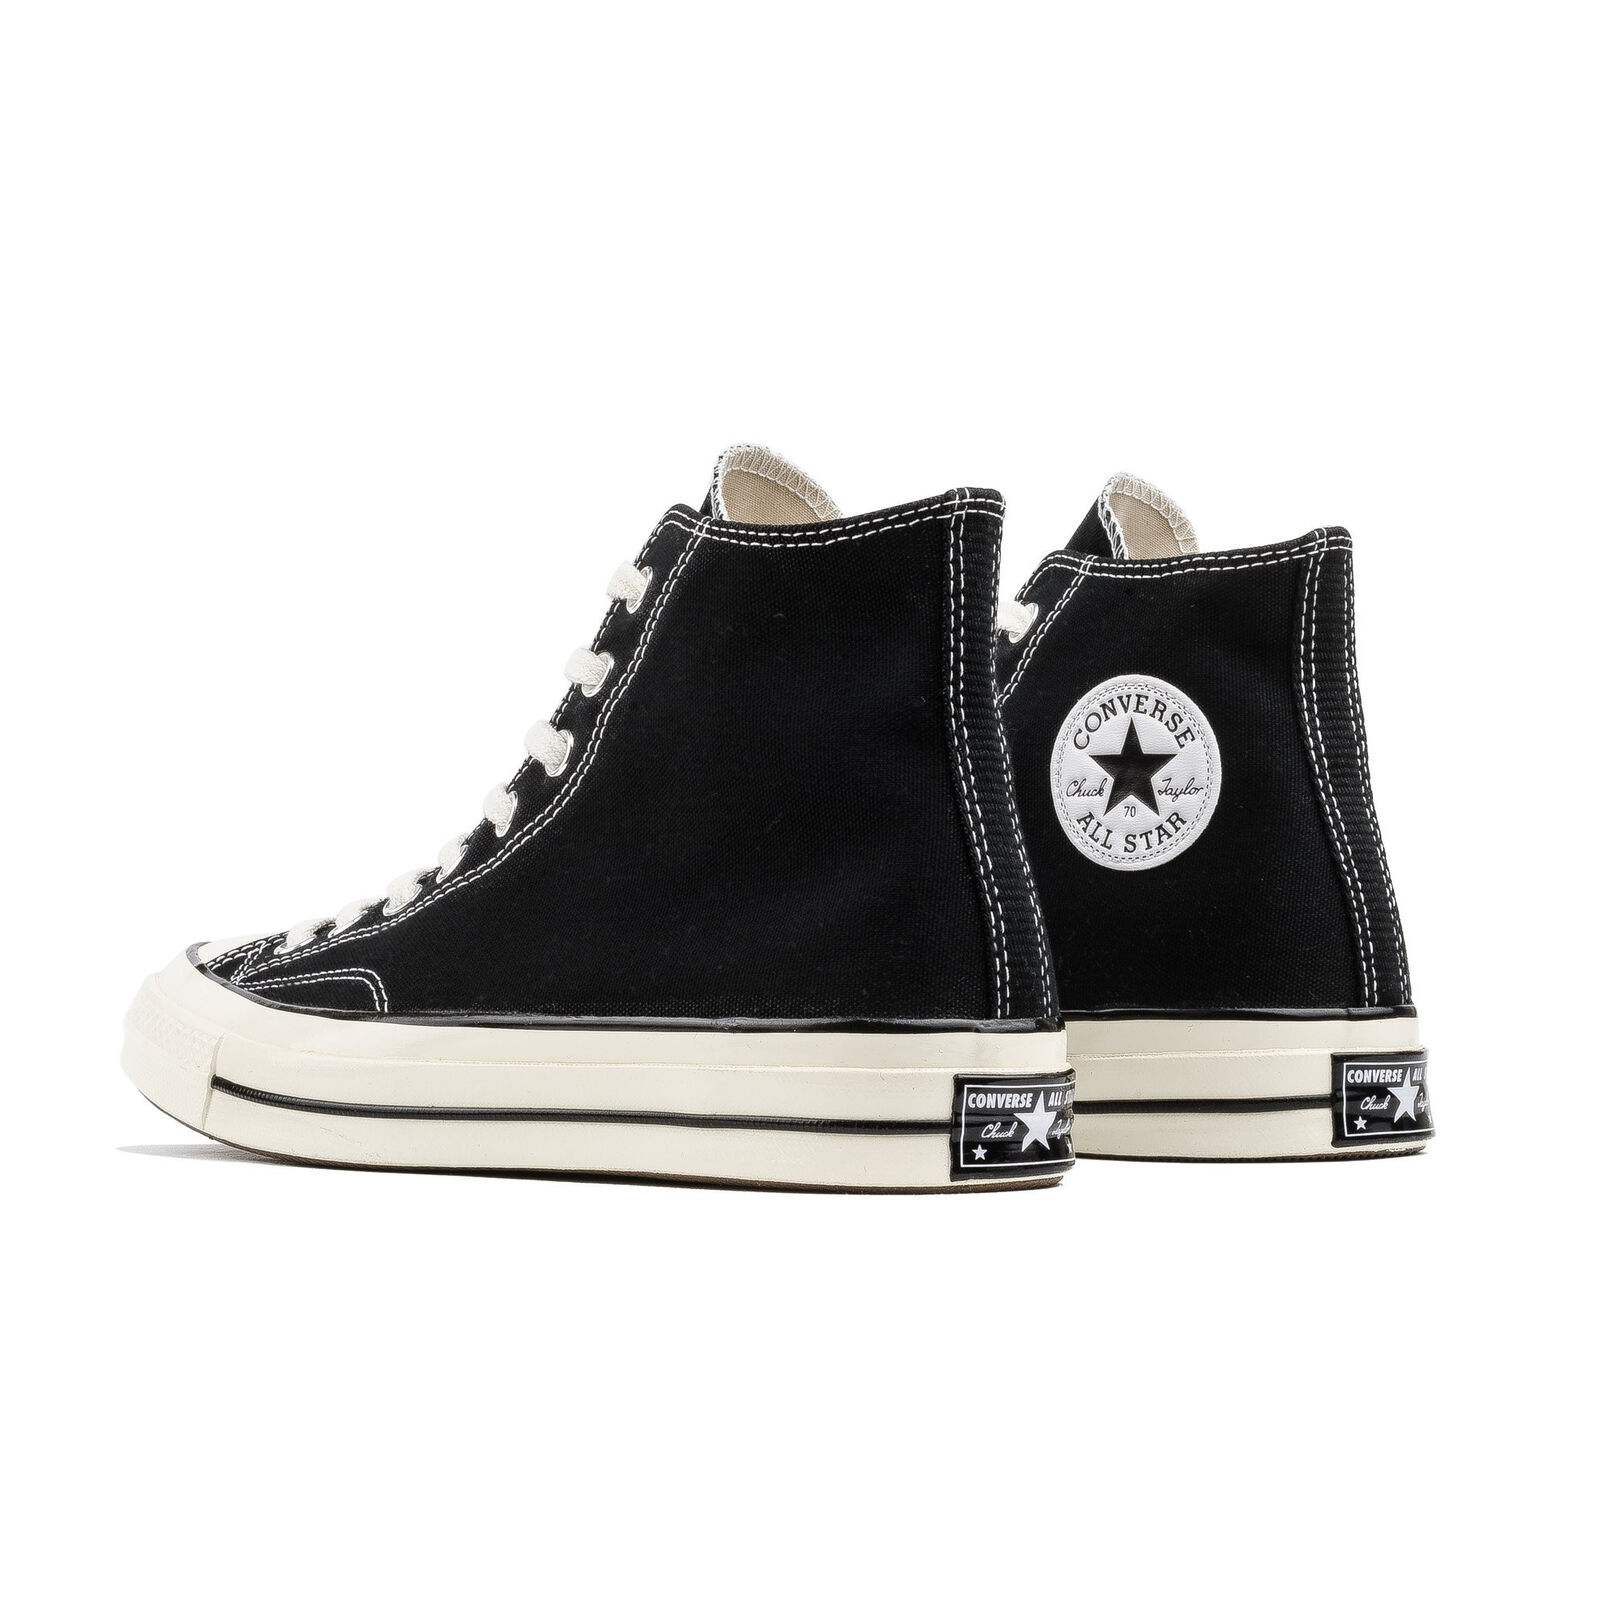 Converse Chuck Taylor All Star Hi 1970s 70s Noir Label First String 162050C